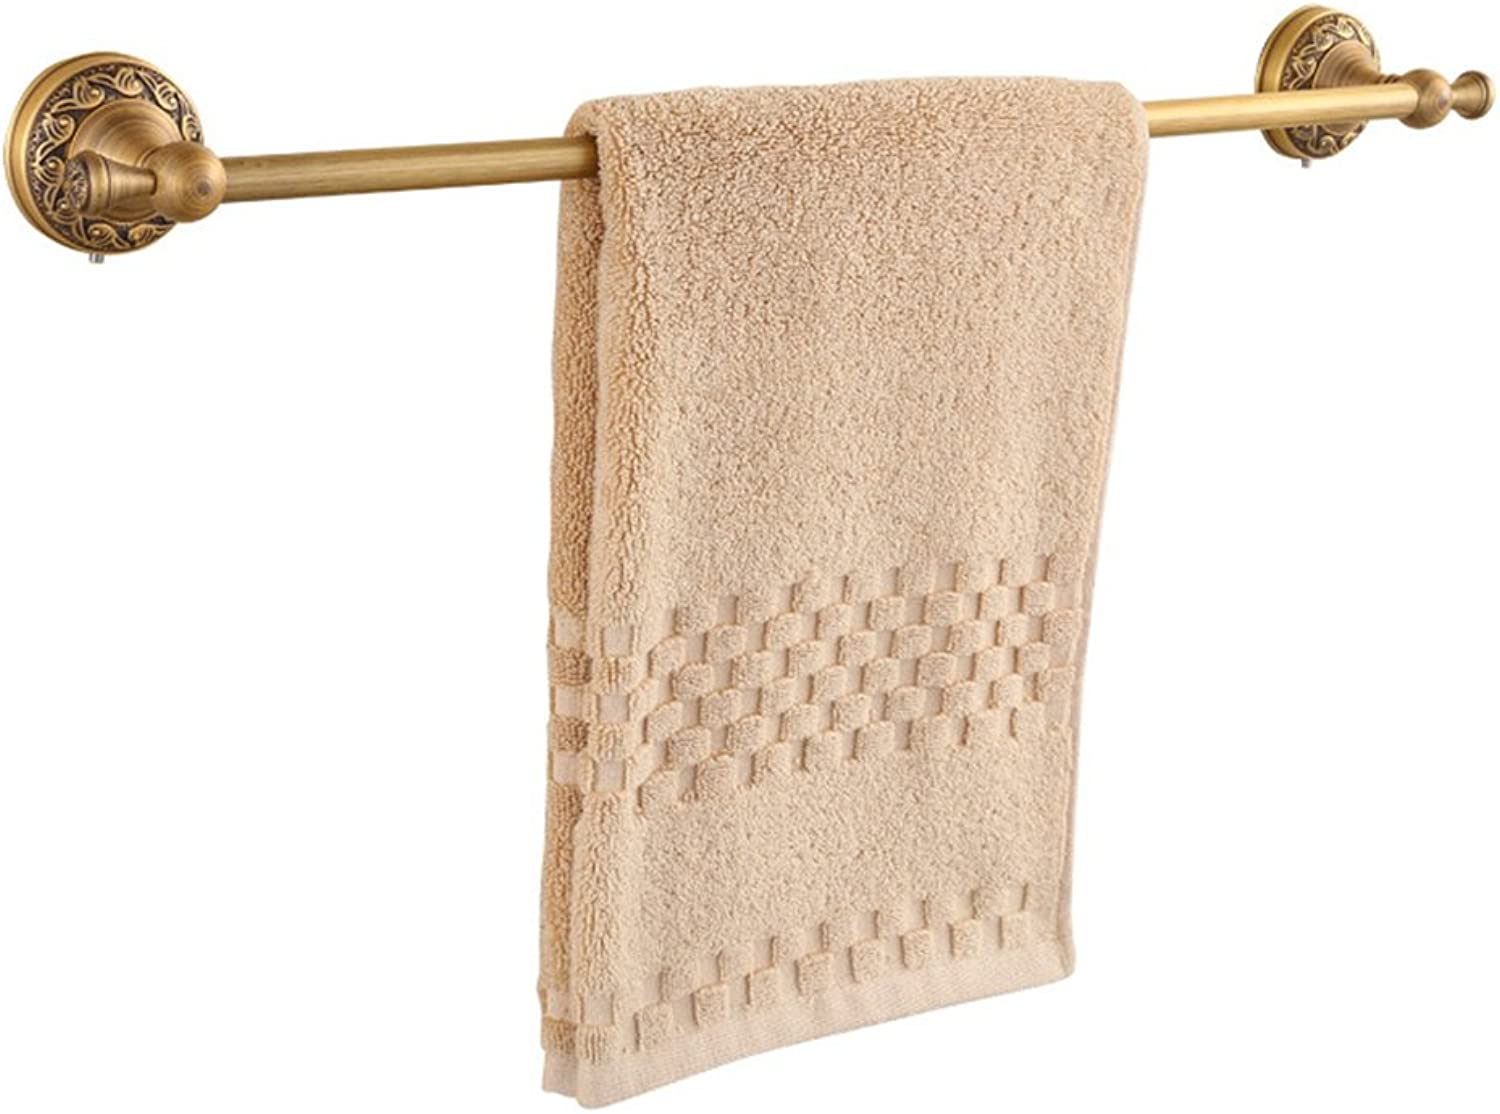 MX Towel Stands Towel Rack - Brass, Perforated, Antique, Wall-Mounted Retro Bathroom Towel Rack, for Bathroom, Kitchen - 61x 8cm @